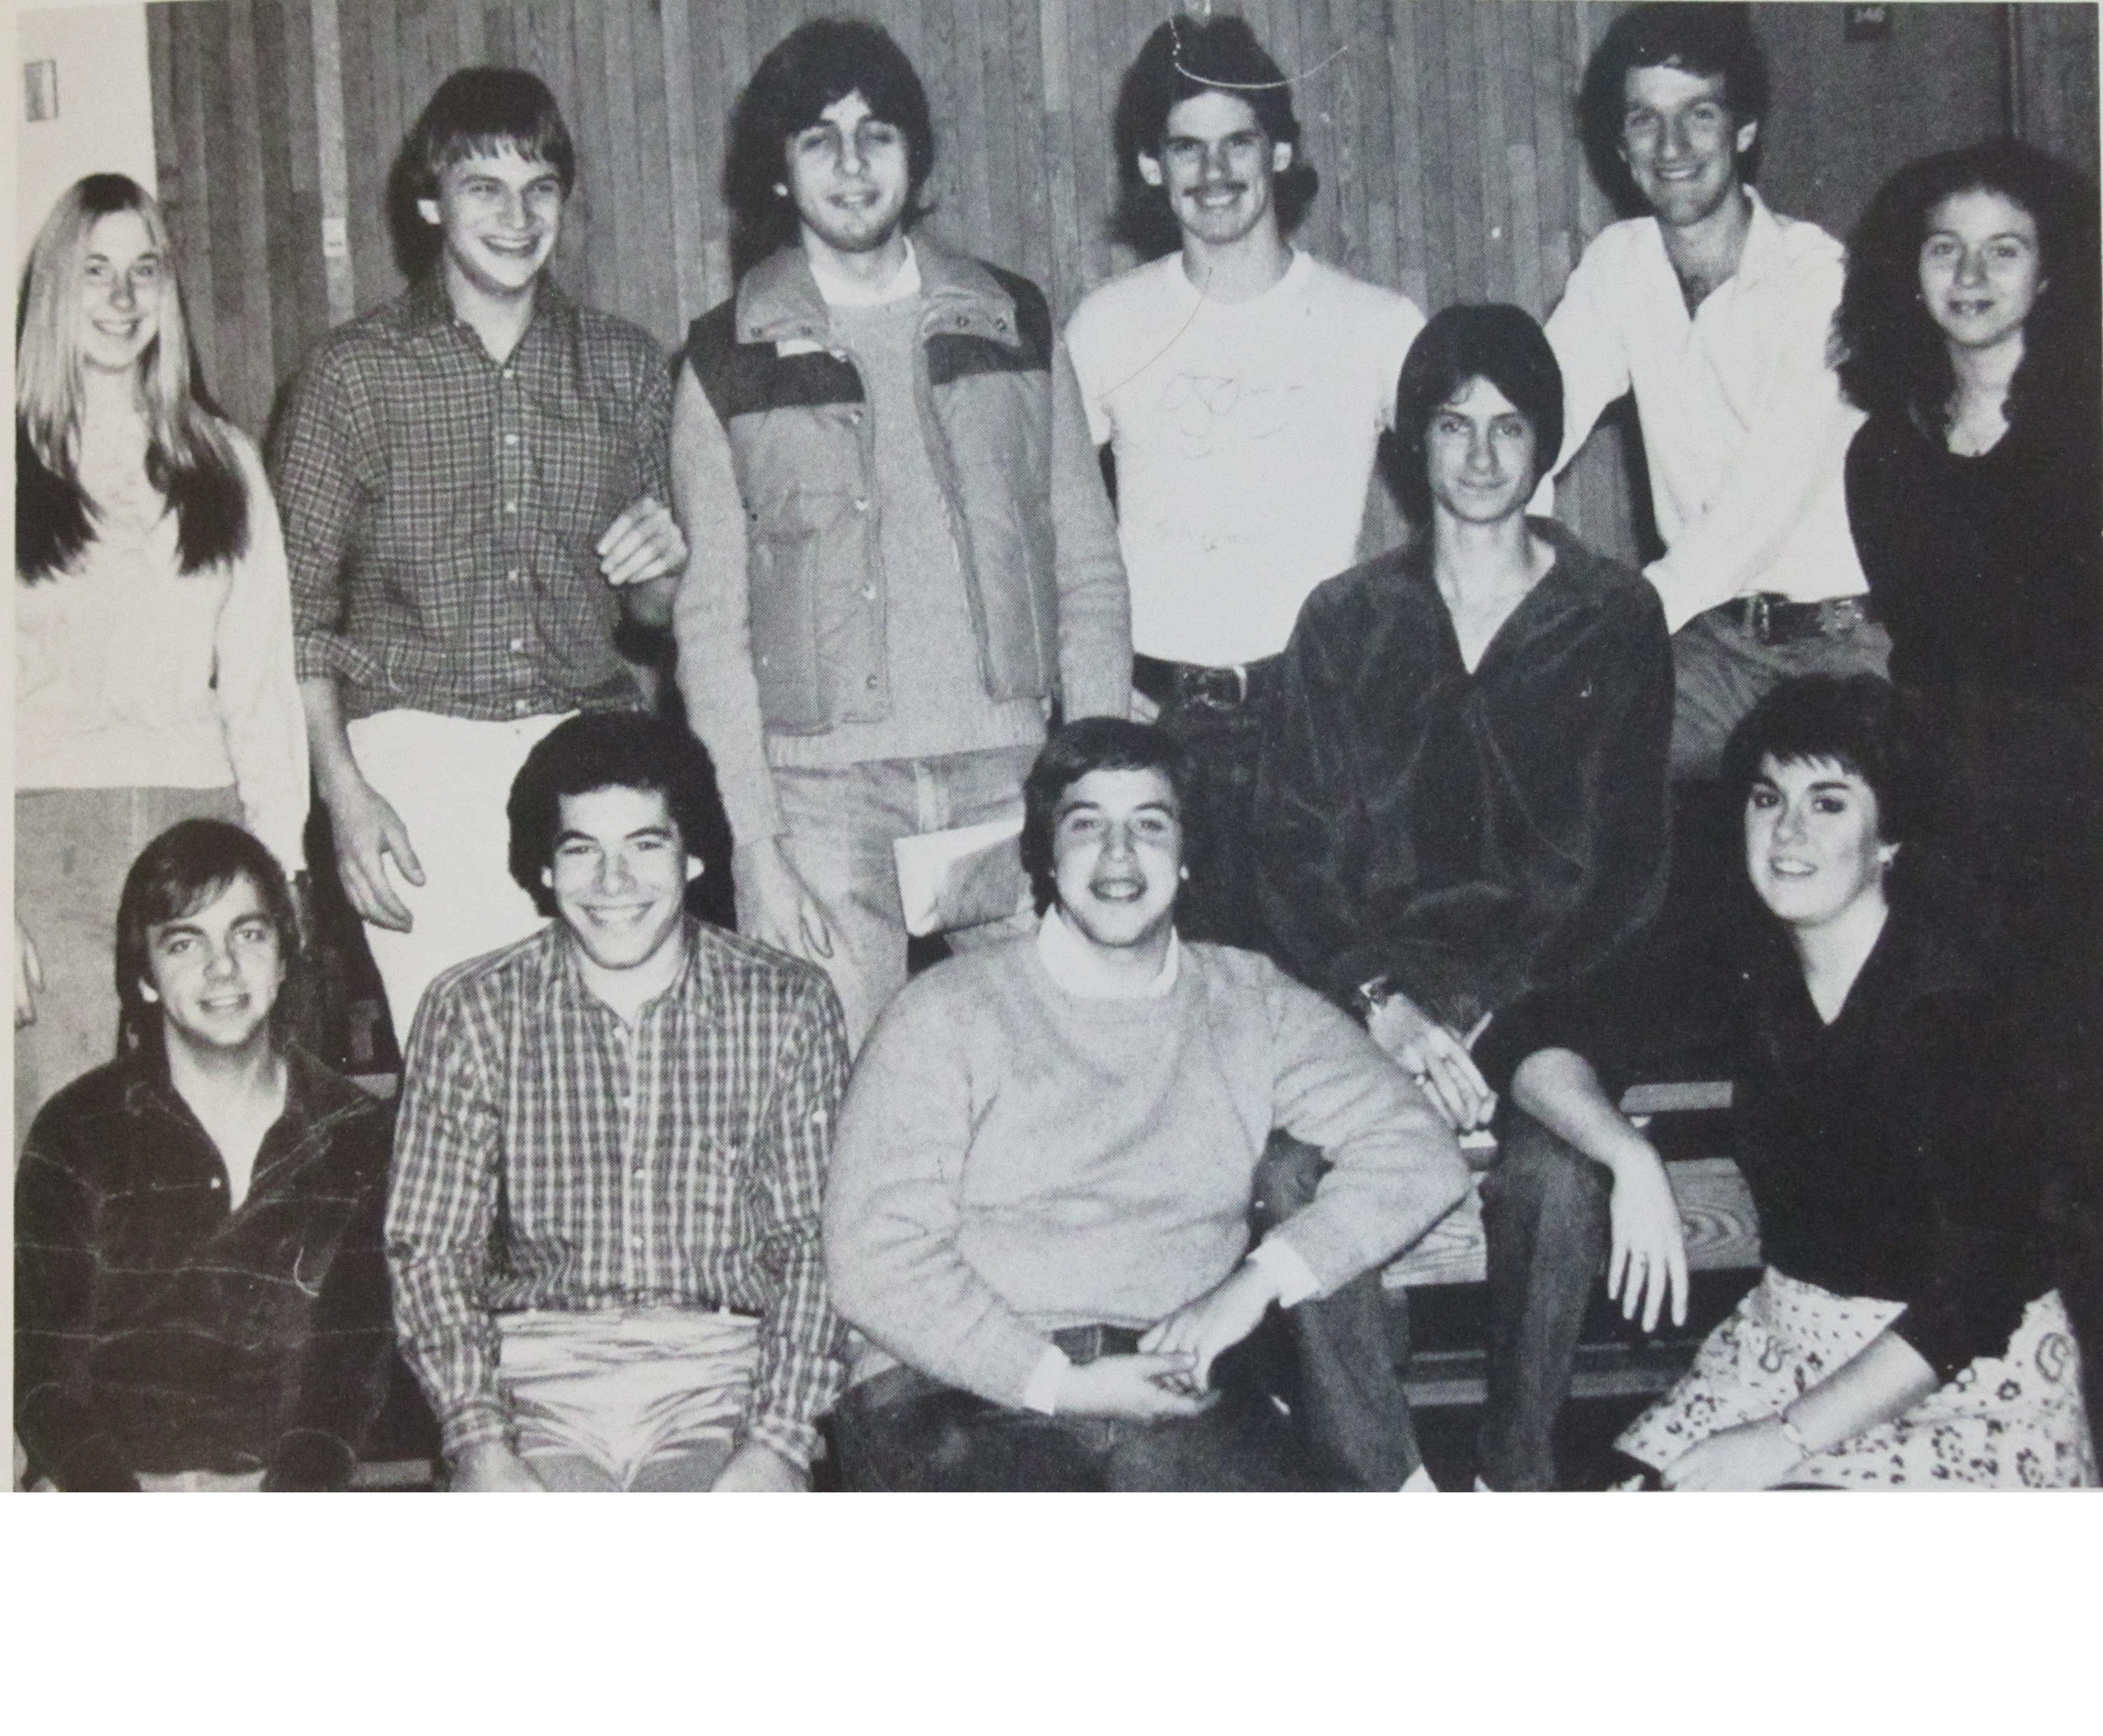 1982 - Left to Right:Sherry Schweighardt, Steve Maffie, Unknown, Tim Jackson, Unknown, Jim Berman, Judiaka Illis Steve Carter, Unknown, Jon Newman, Rose Mahoney